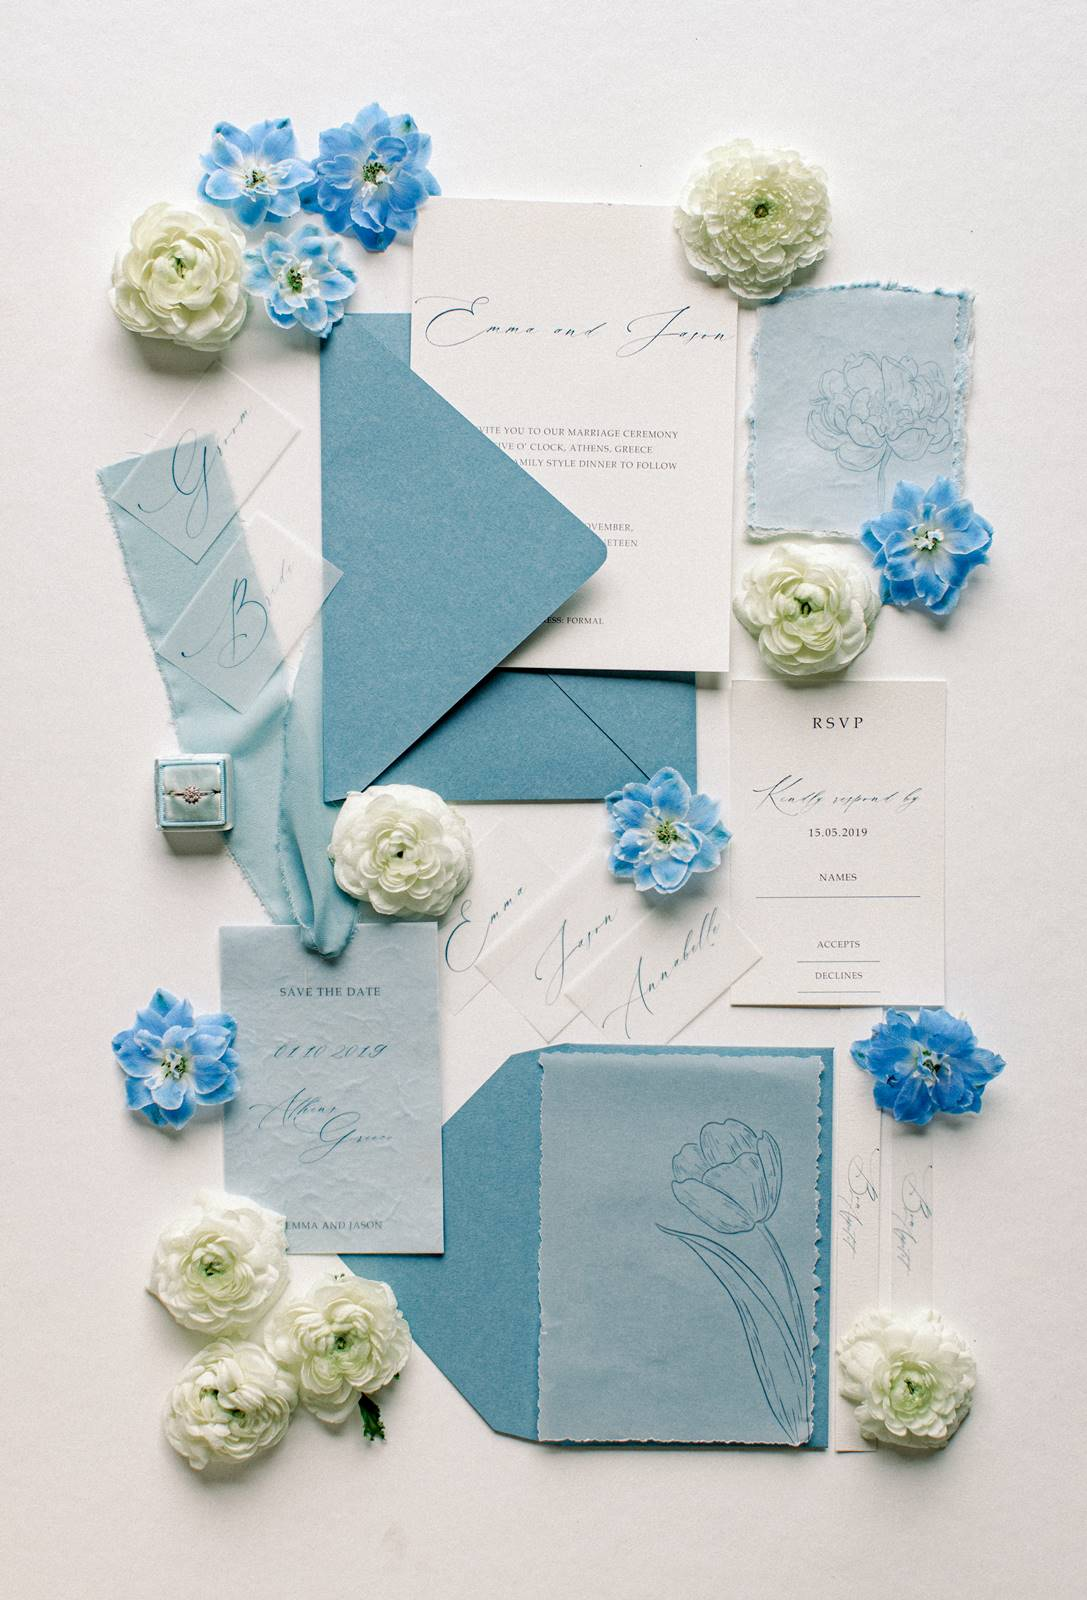 wedding invitations flat lay styling design tips